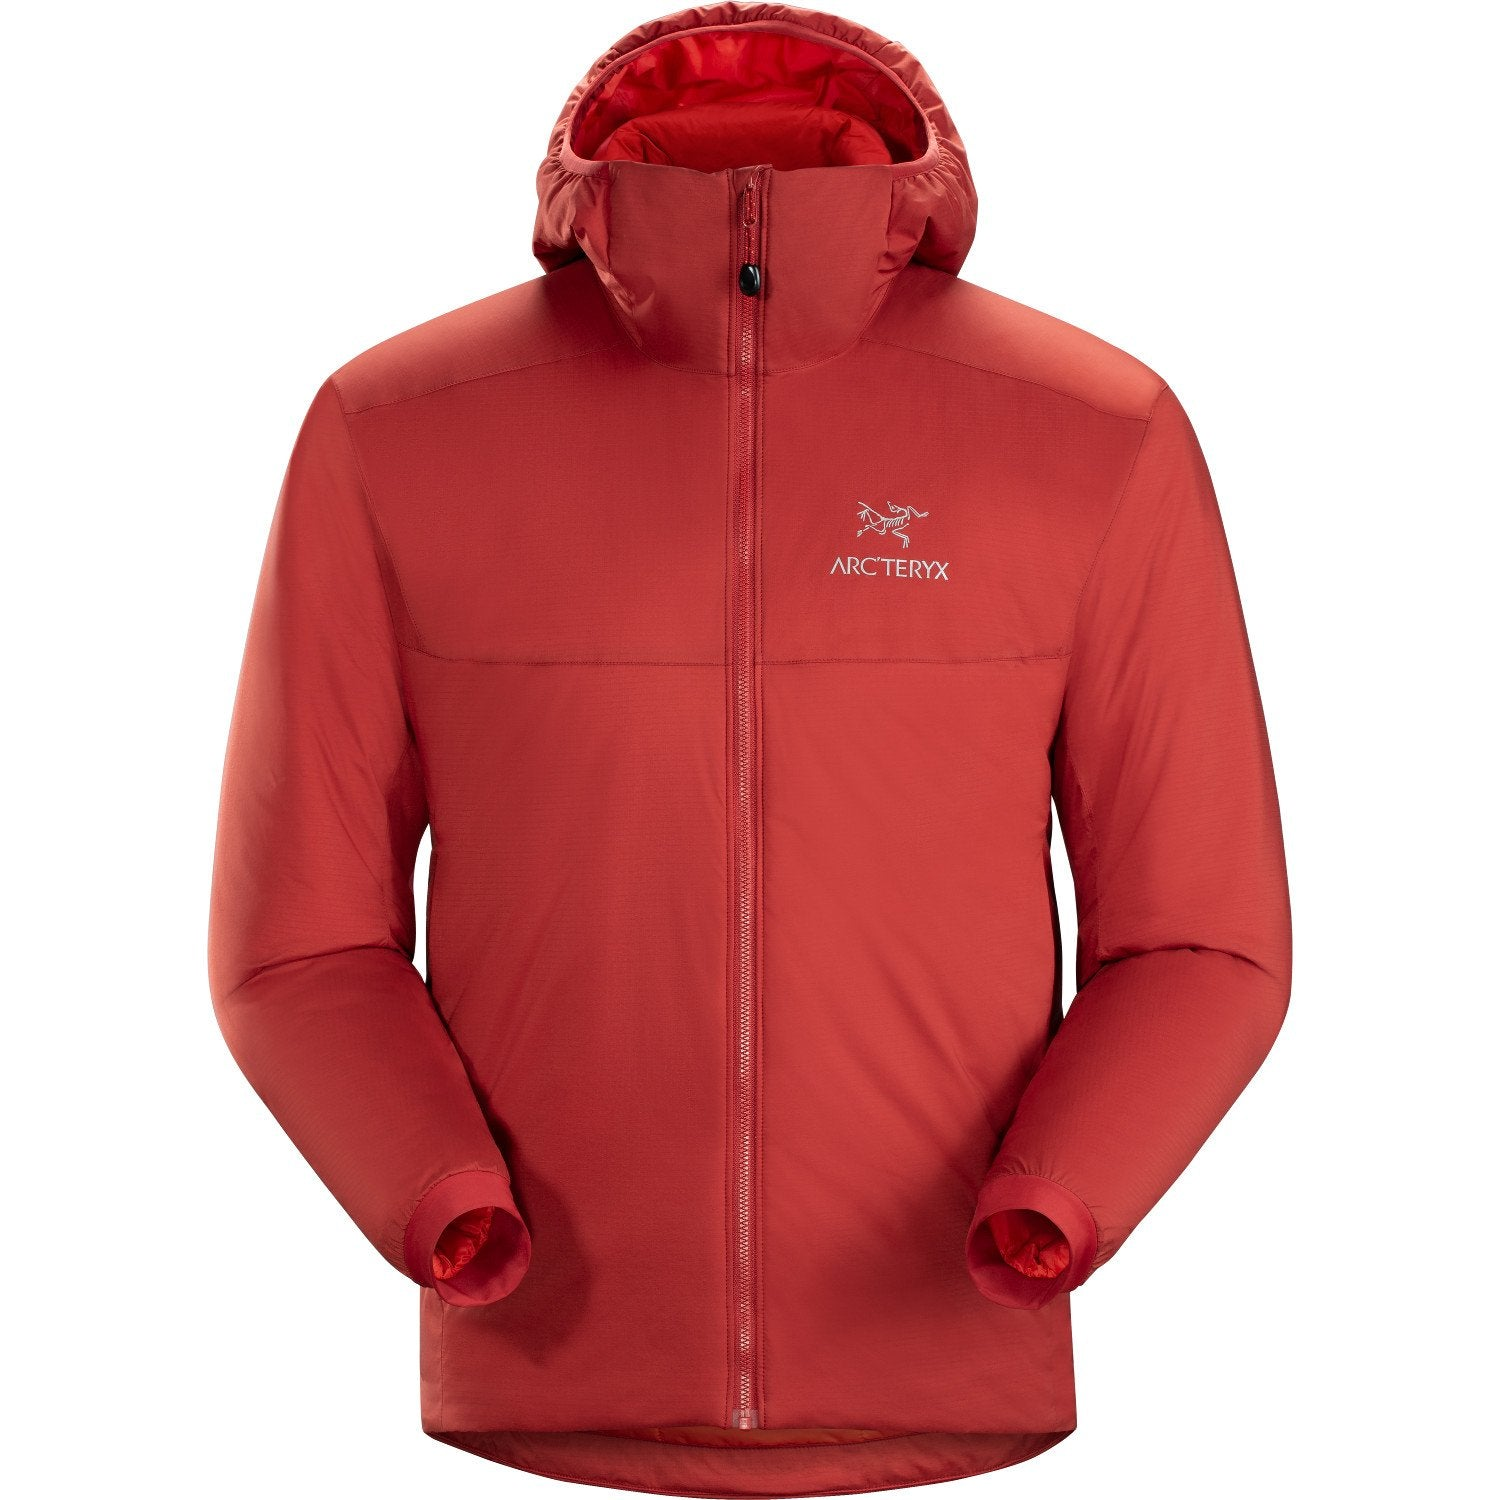 Arc'Teryx Atom AR Hoody Mens Jacket in Red